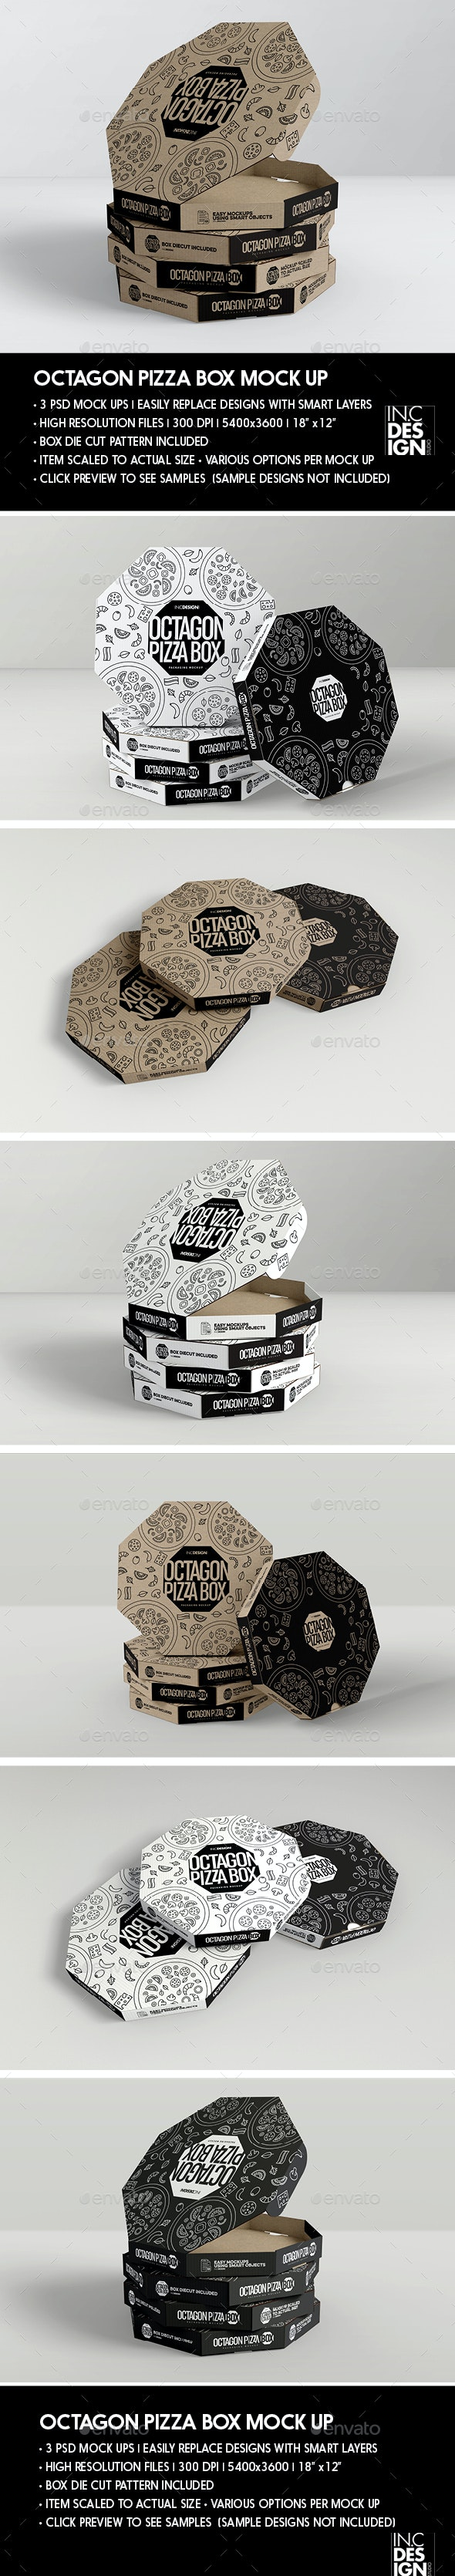 Packaging Mock up Octagon Pizza Box - Food and Drink Packaging